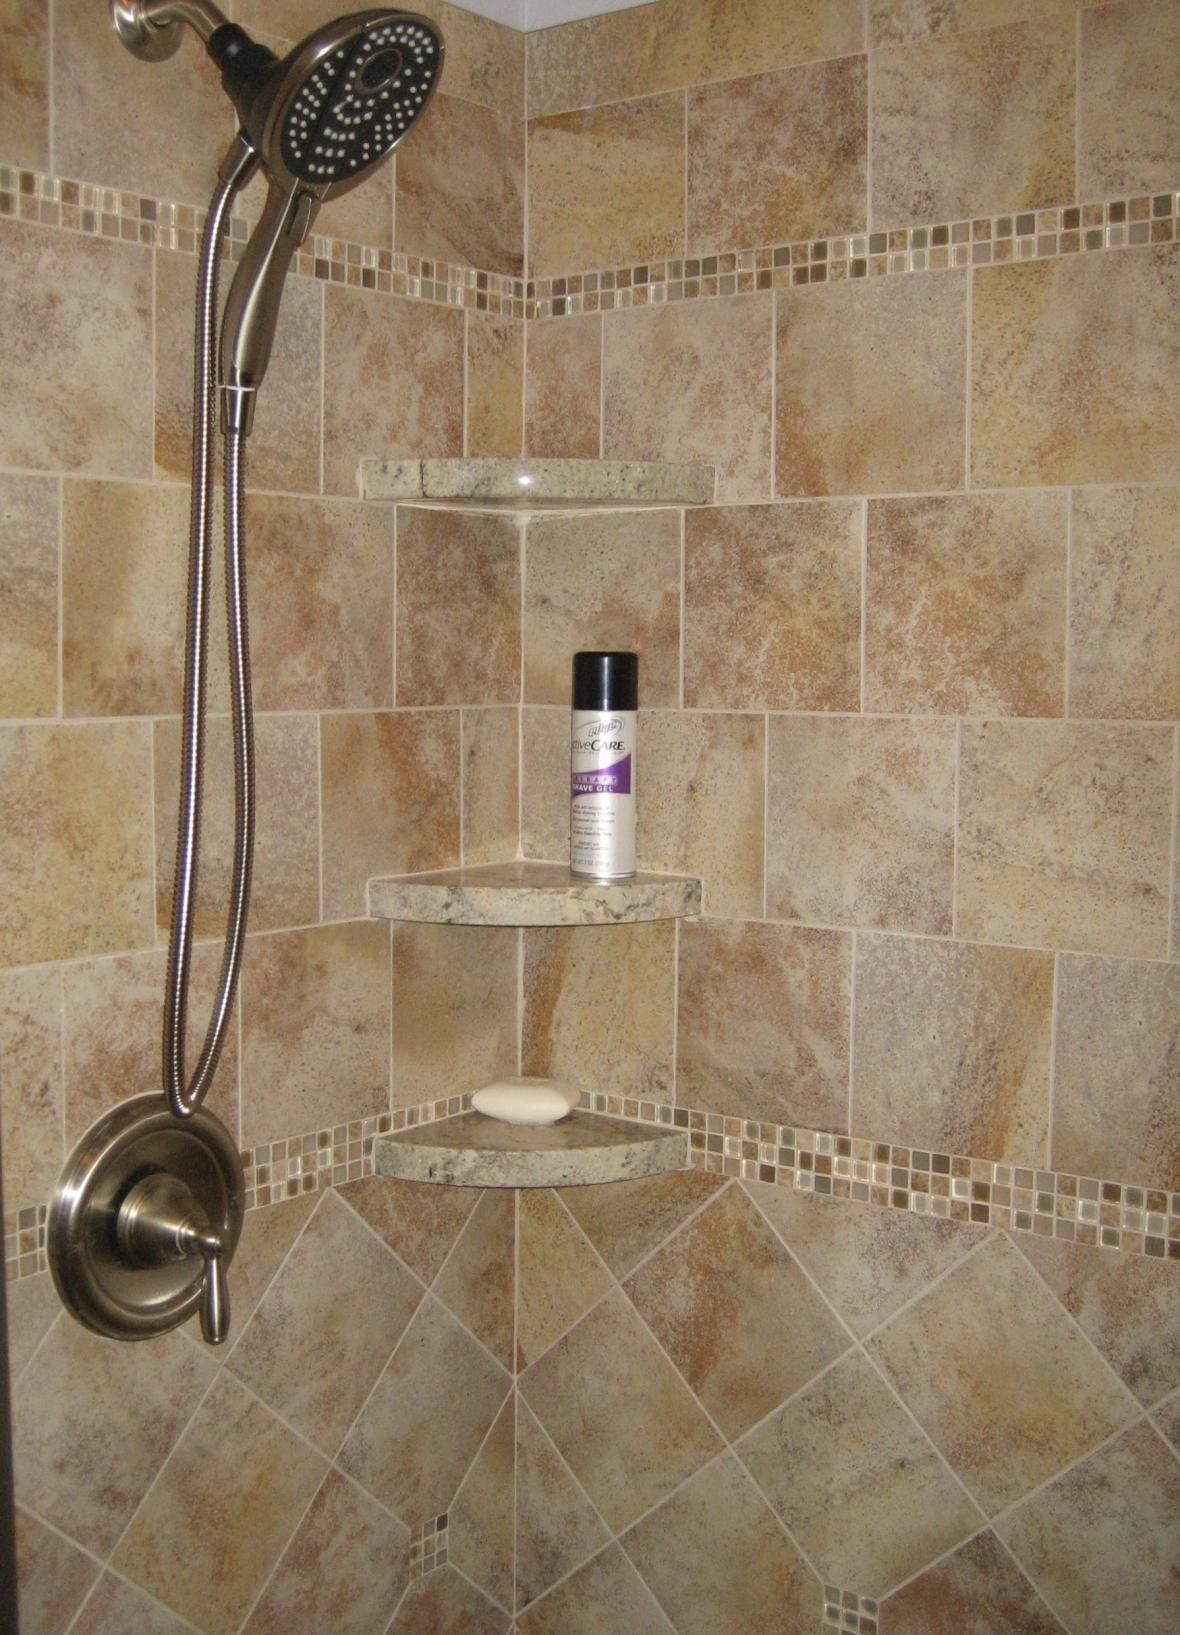 Shower Tile Patterns Google Search For The Home Pinterest Shower Tile Patterns Tile